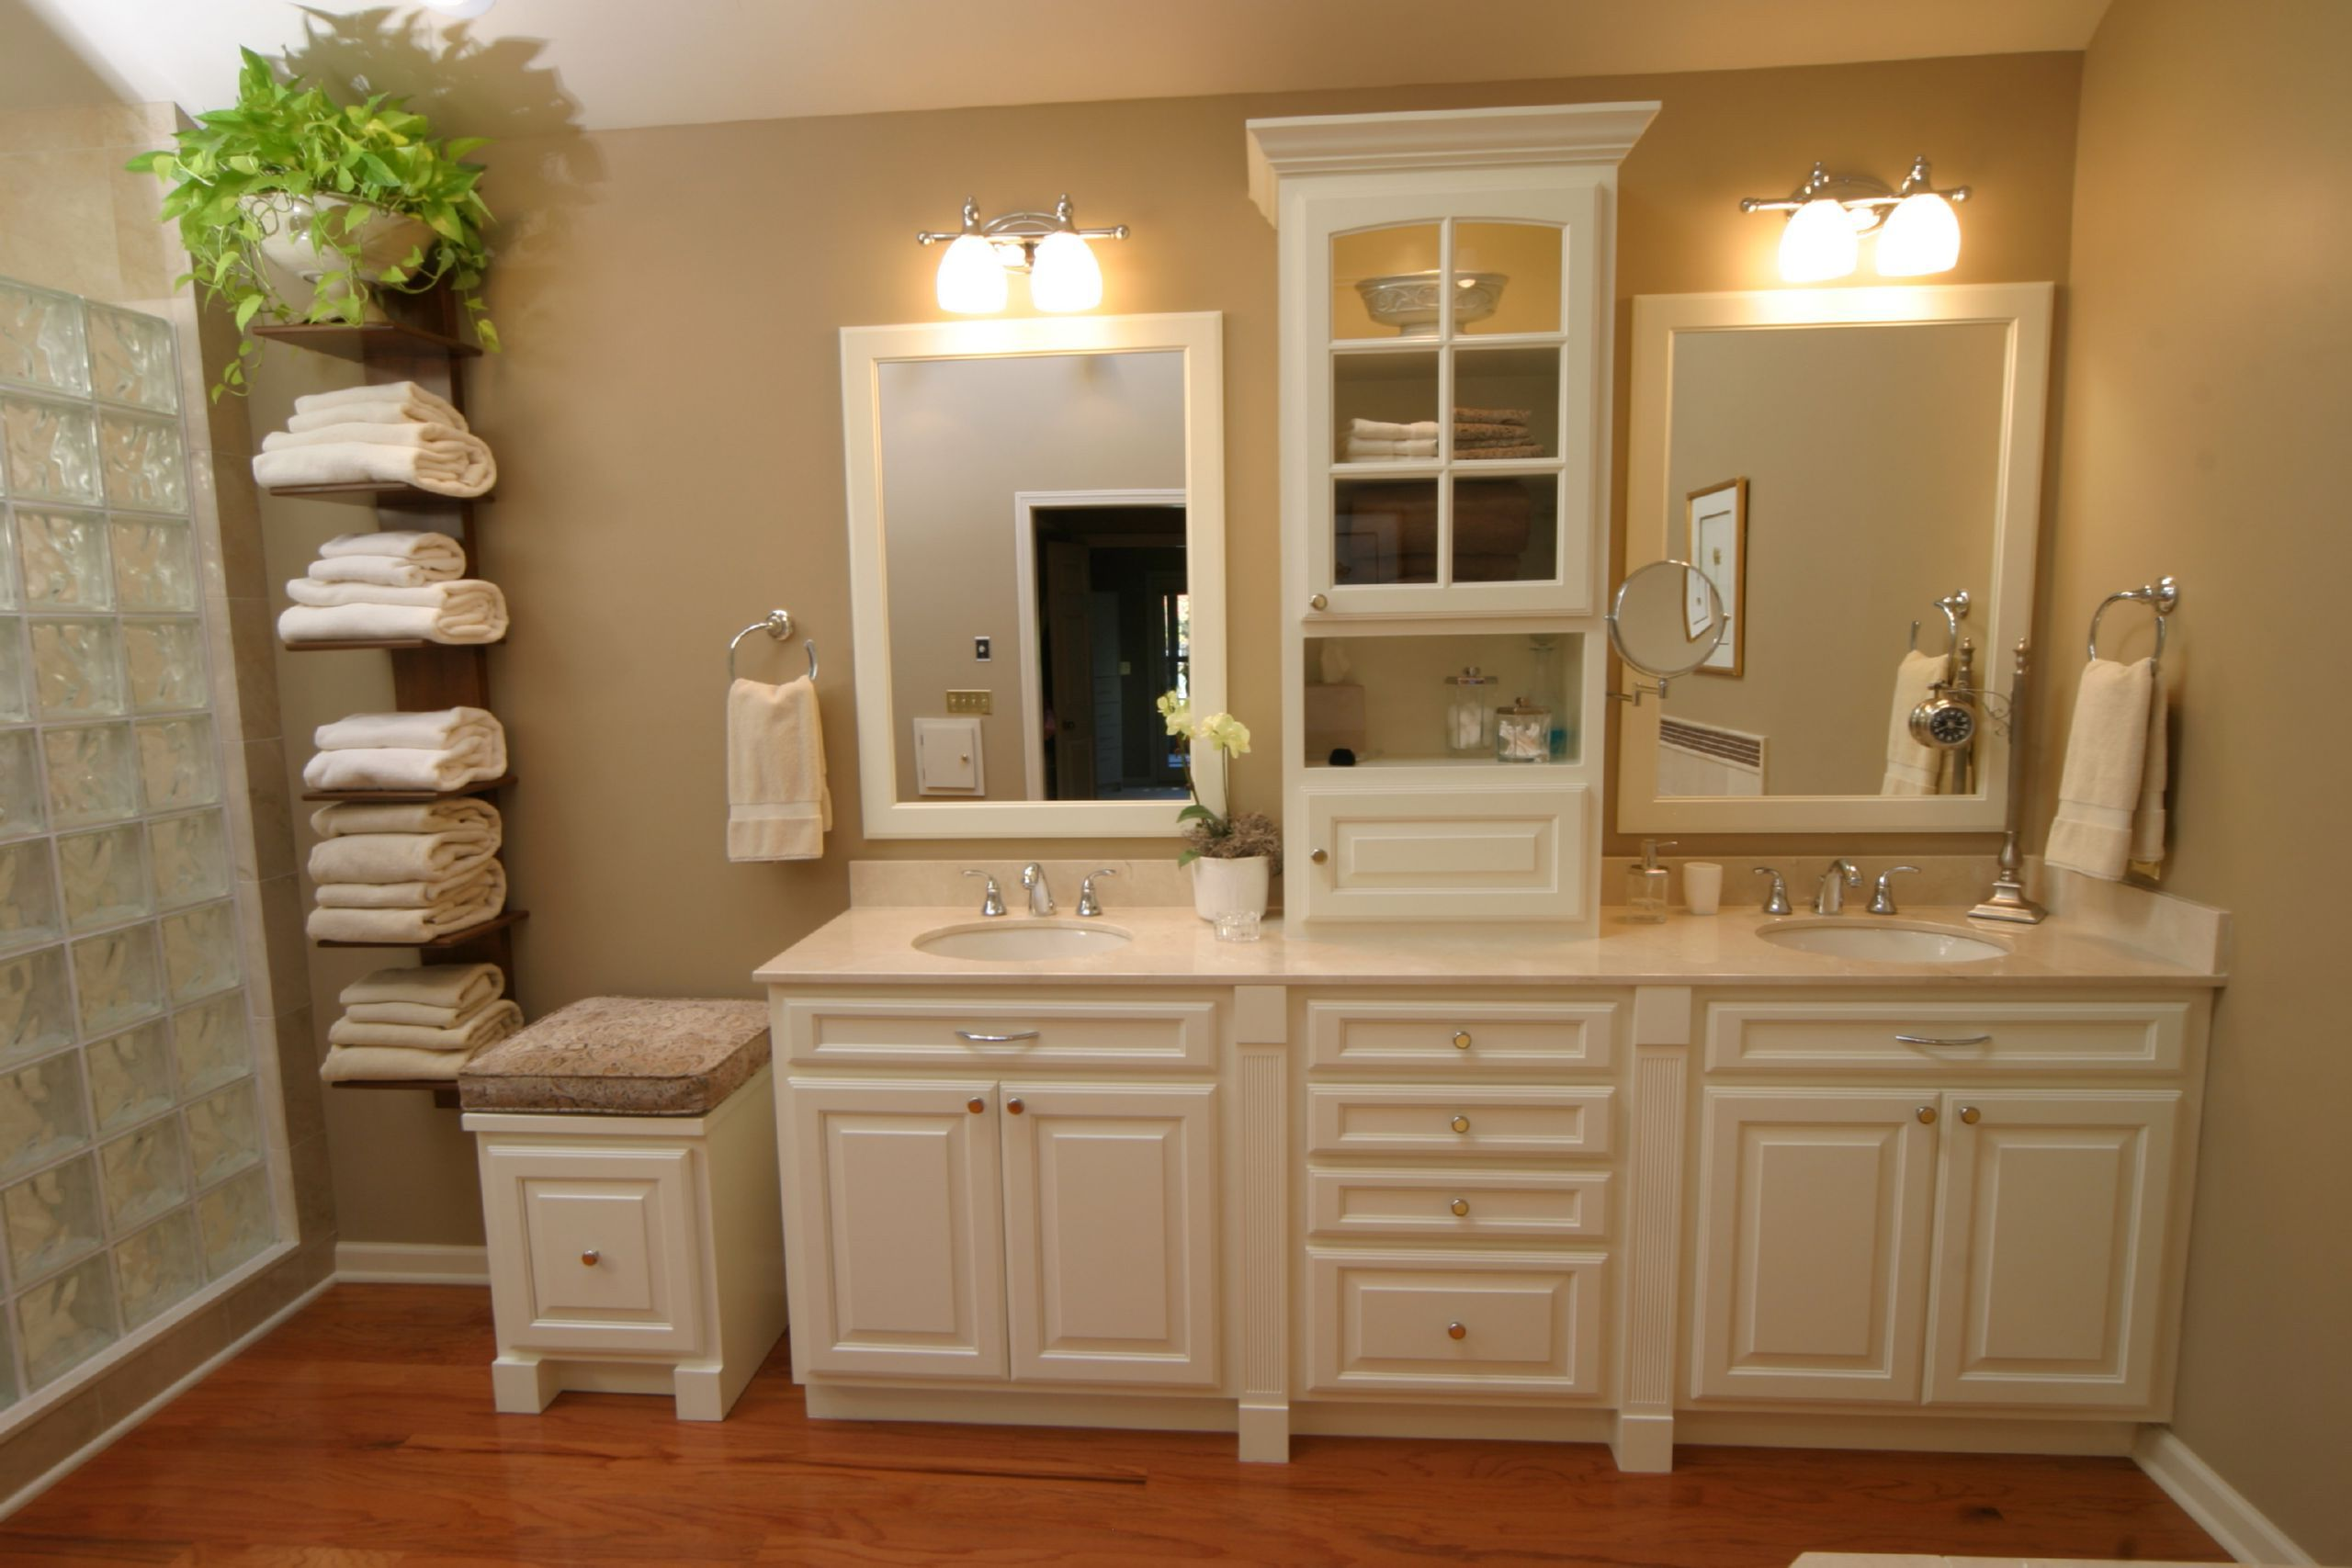 White Wooden Cabinet With Drawers And Storage Combined With Cream